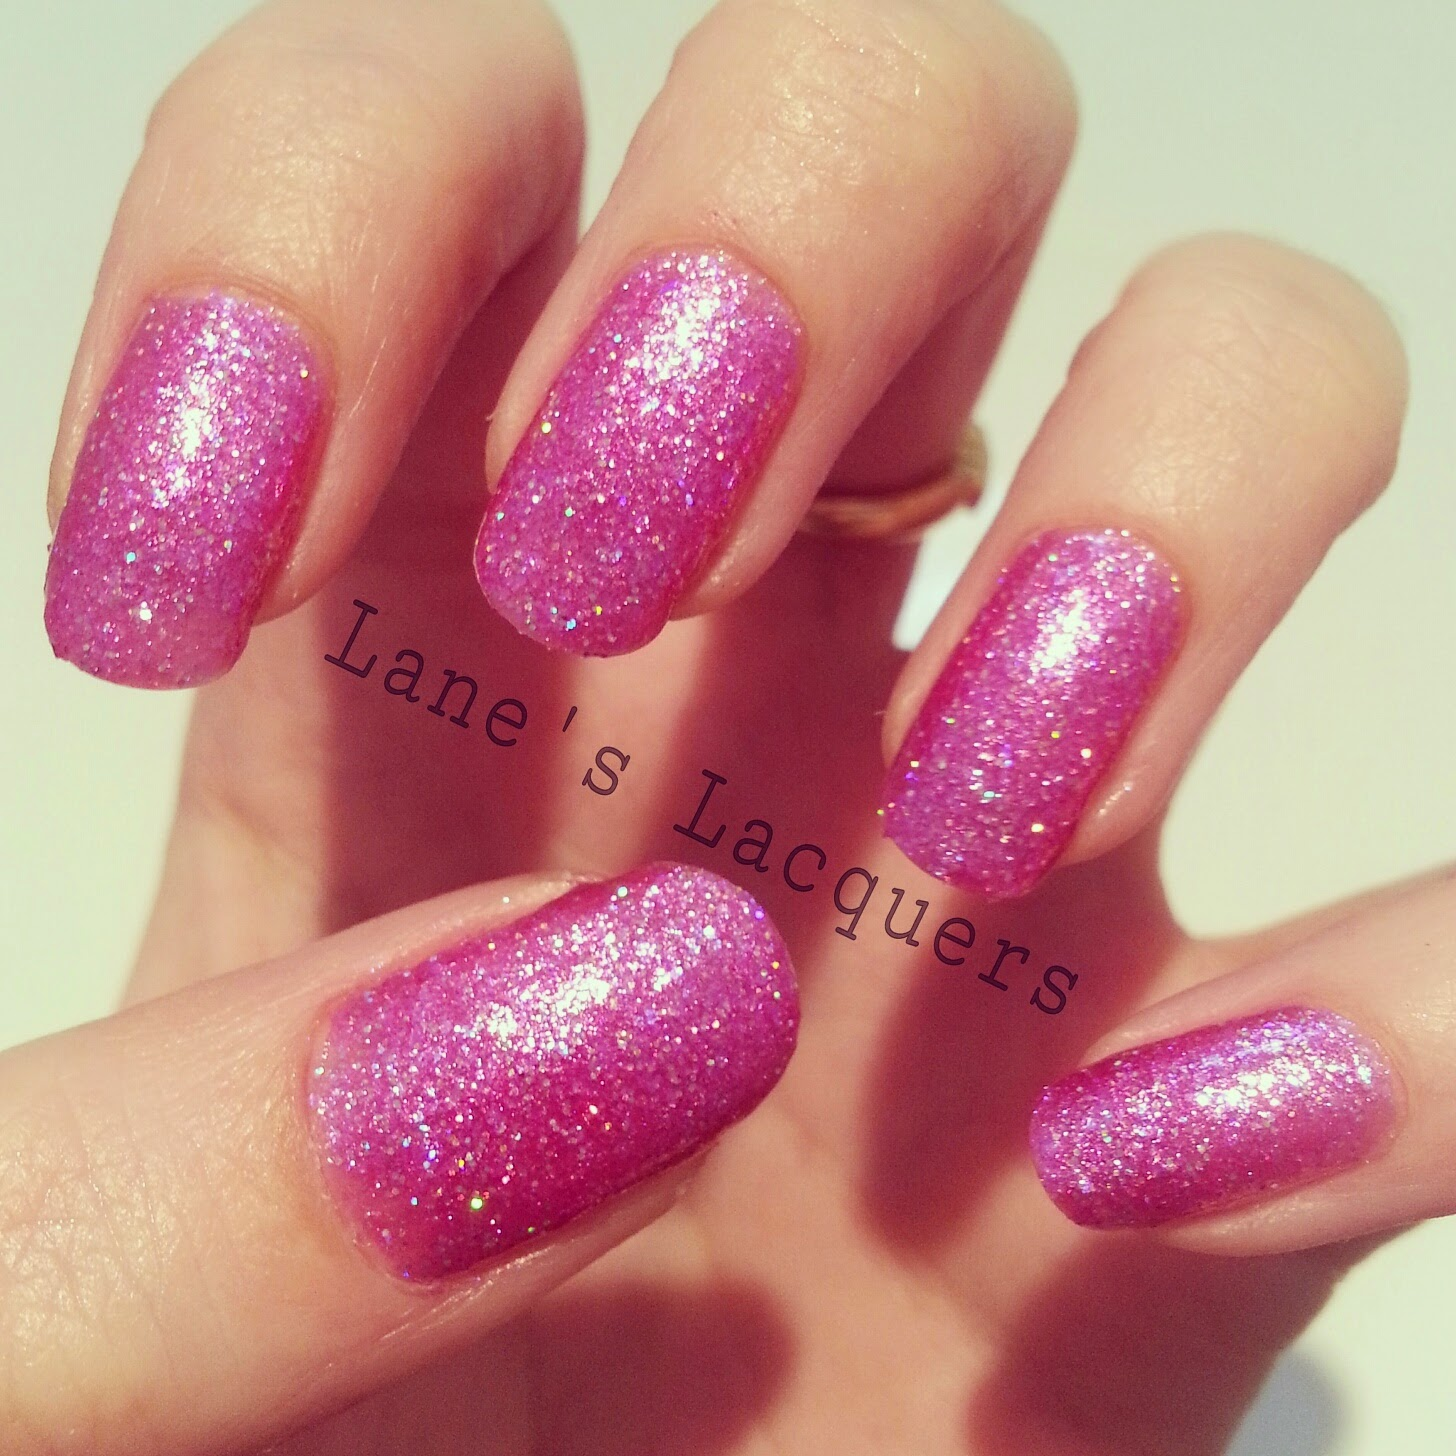 new-barry-m-glitterati-socialite-swatch-manicure